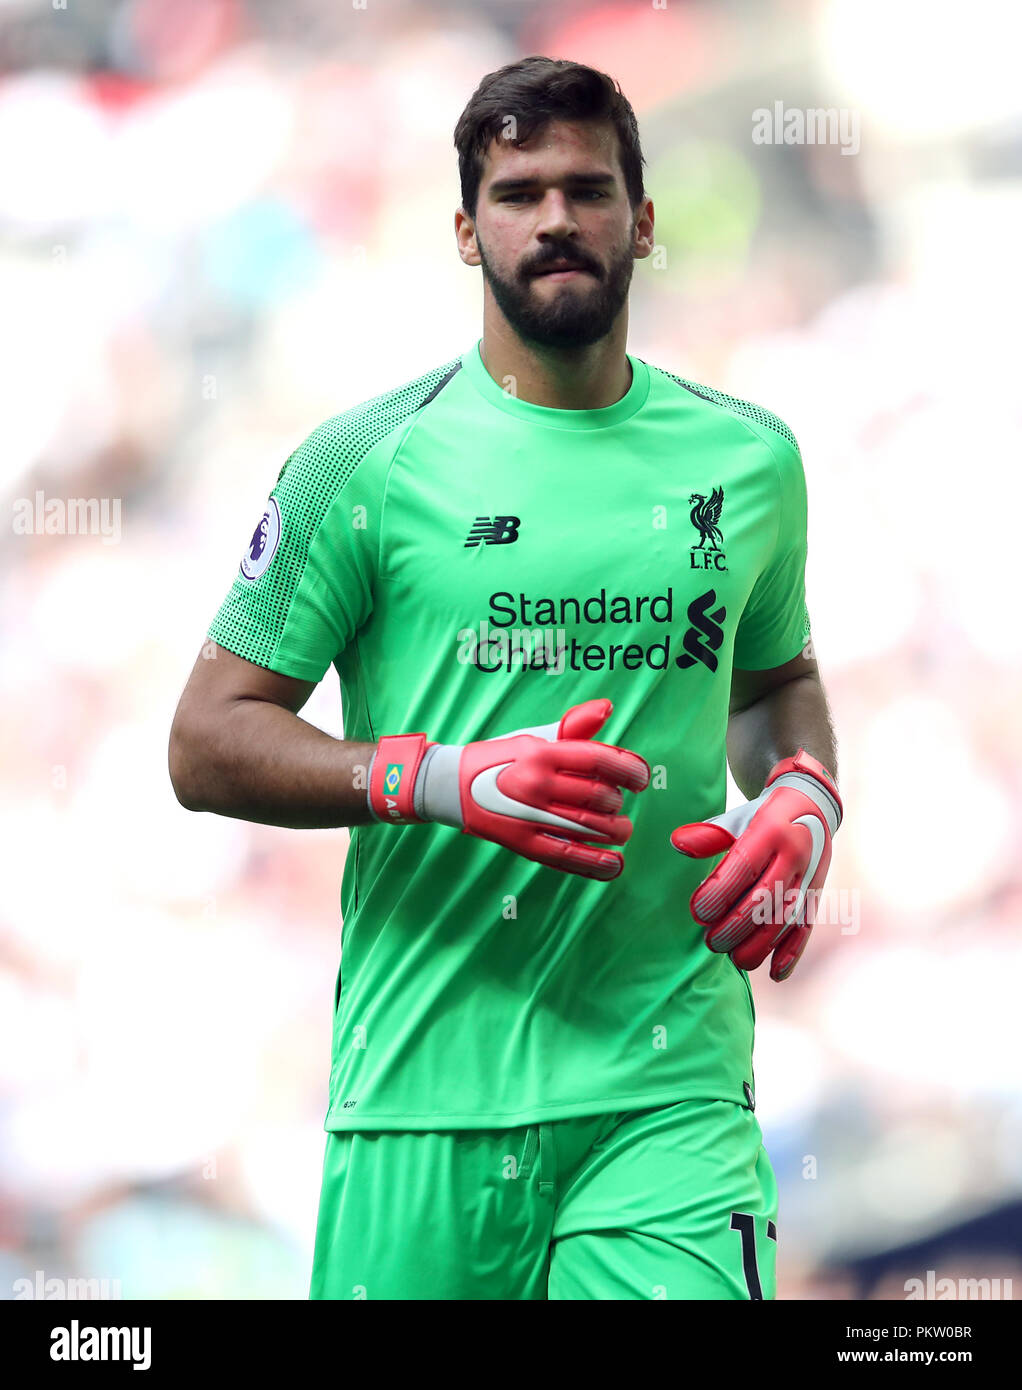 75f8fc201db Liverpool goalkeeper Alisson Becker during the Premier League match at  Wembley Stadium